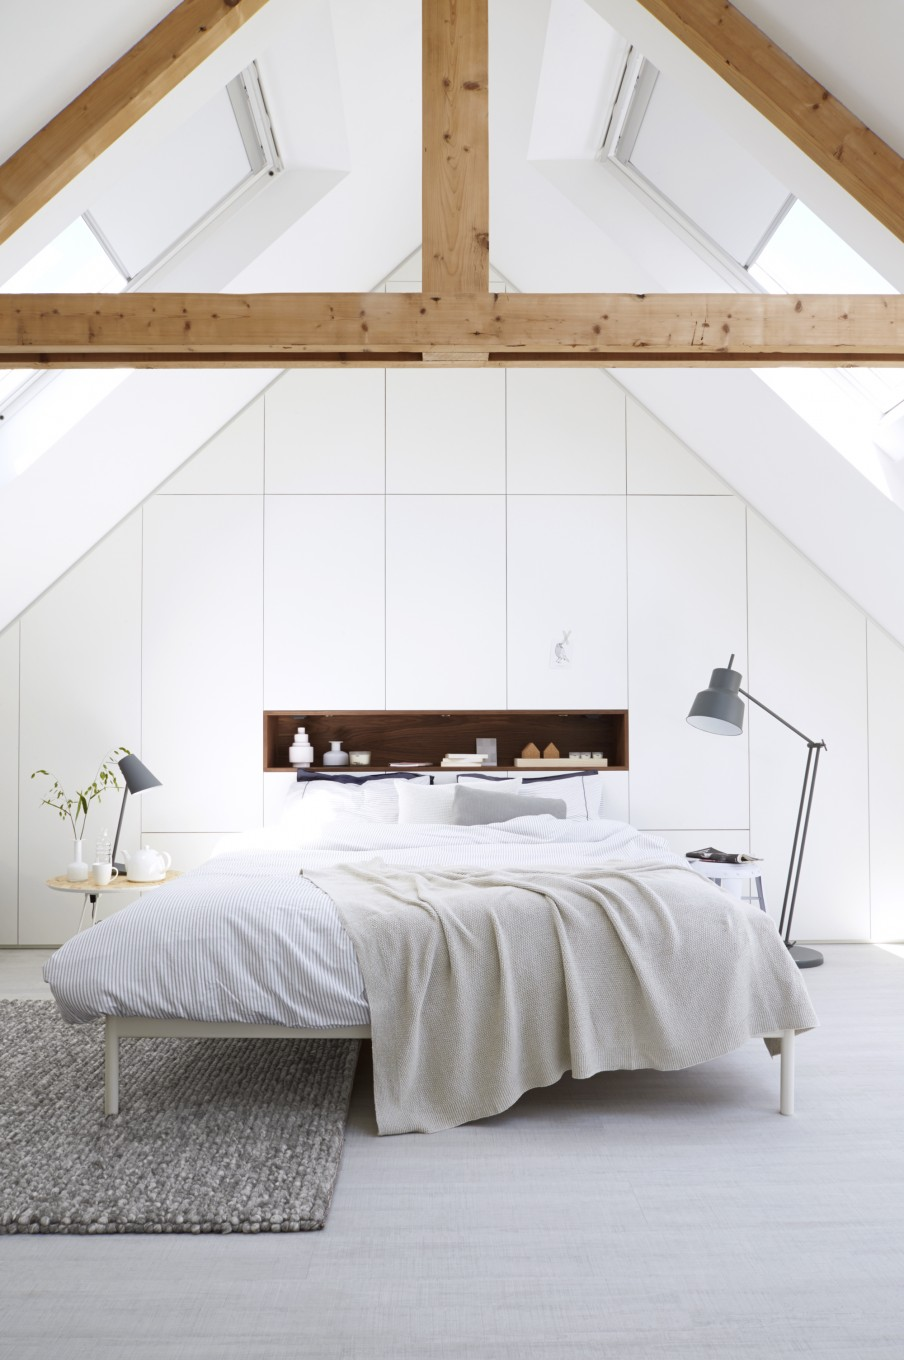 Une chambre sous les toits frenchy fancy - Lay outs idee ...